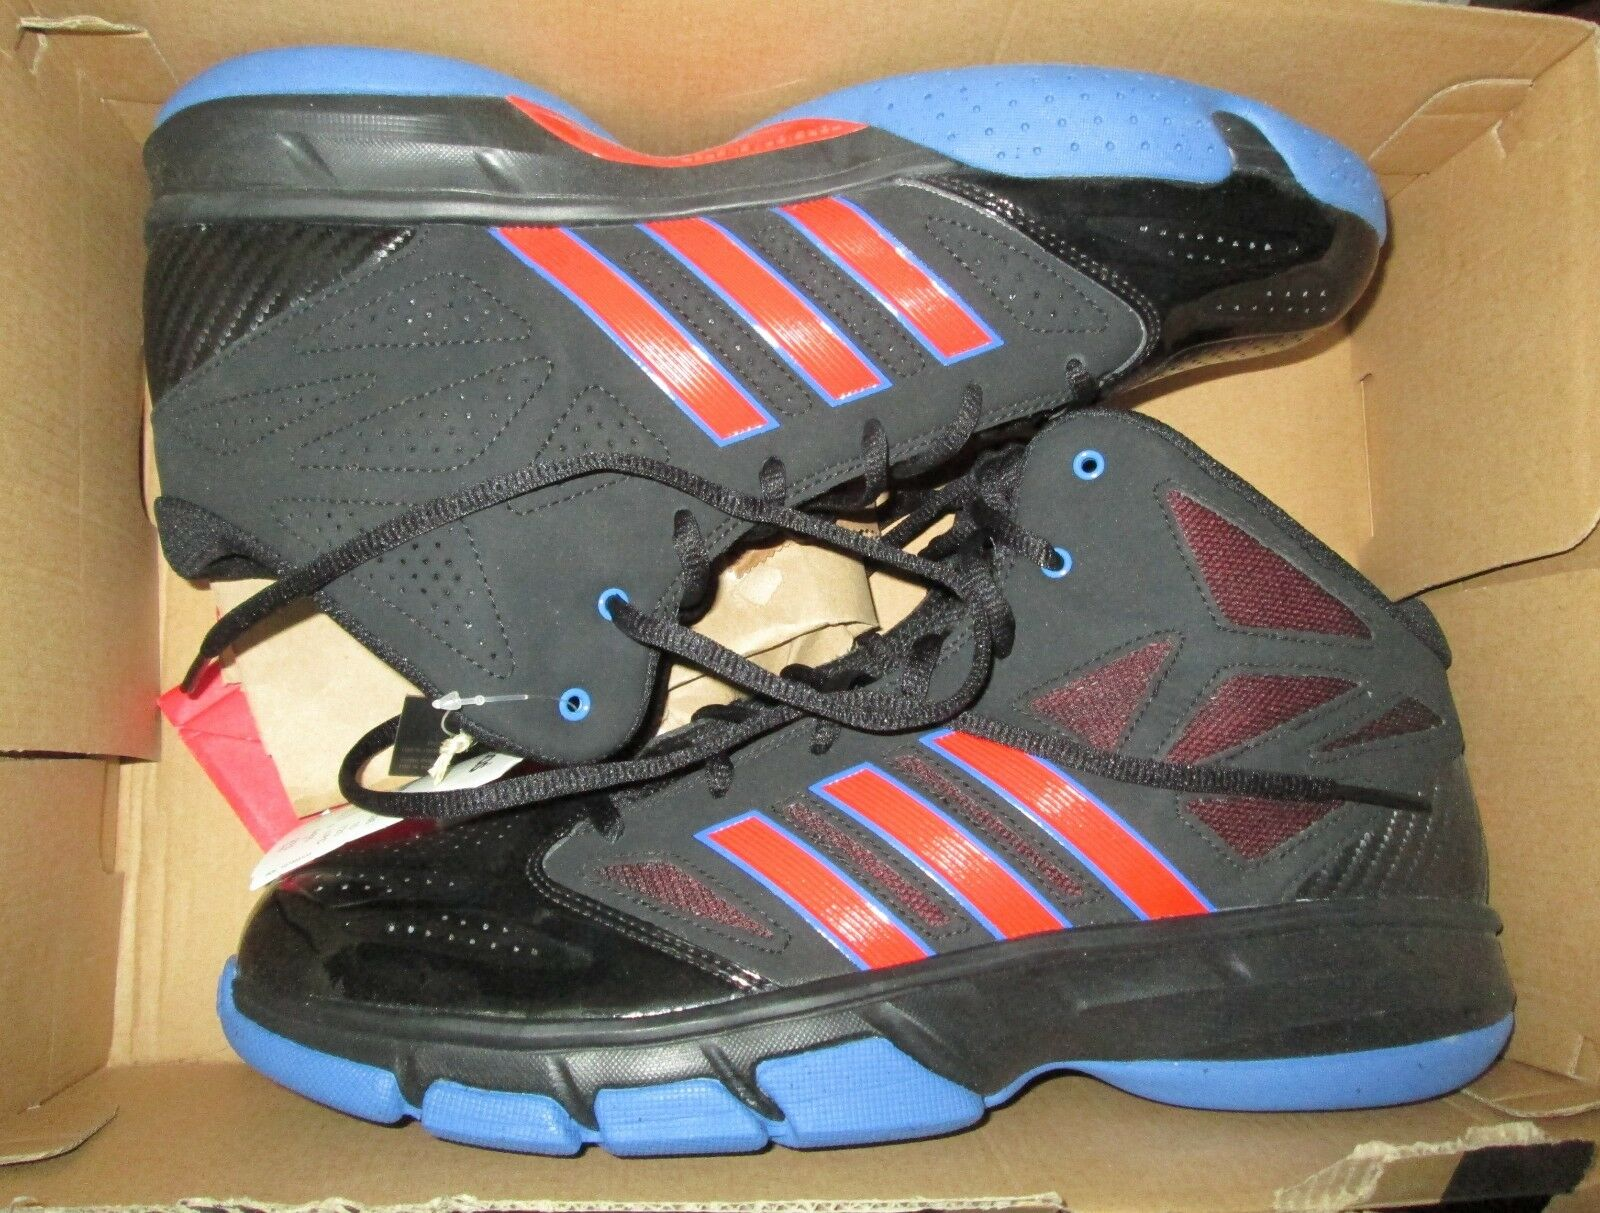 ADIDAS CROSS EM 2 basketball sneakers shoes men's US size 10.5 NEW